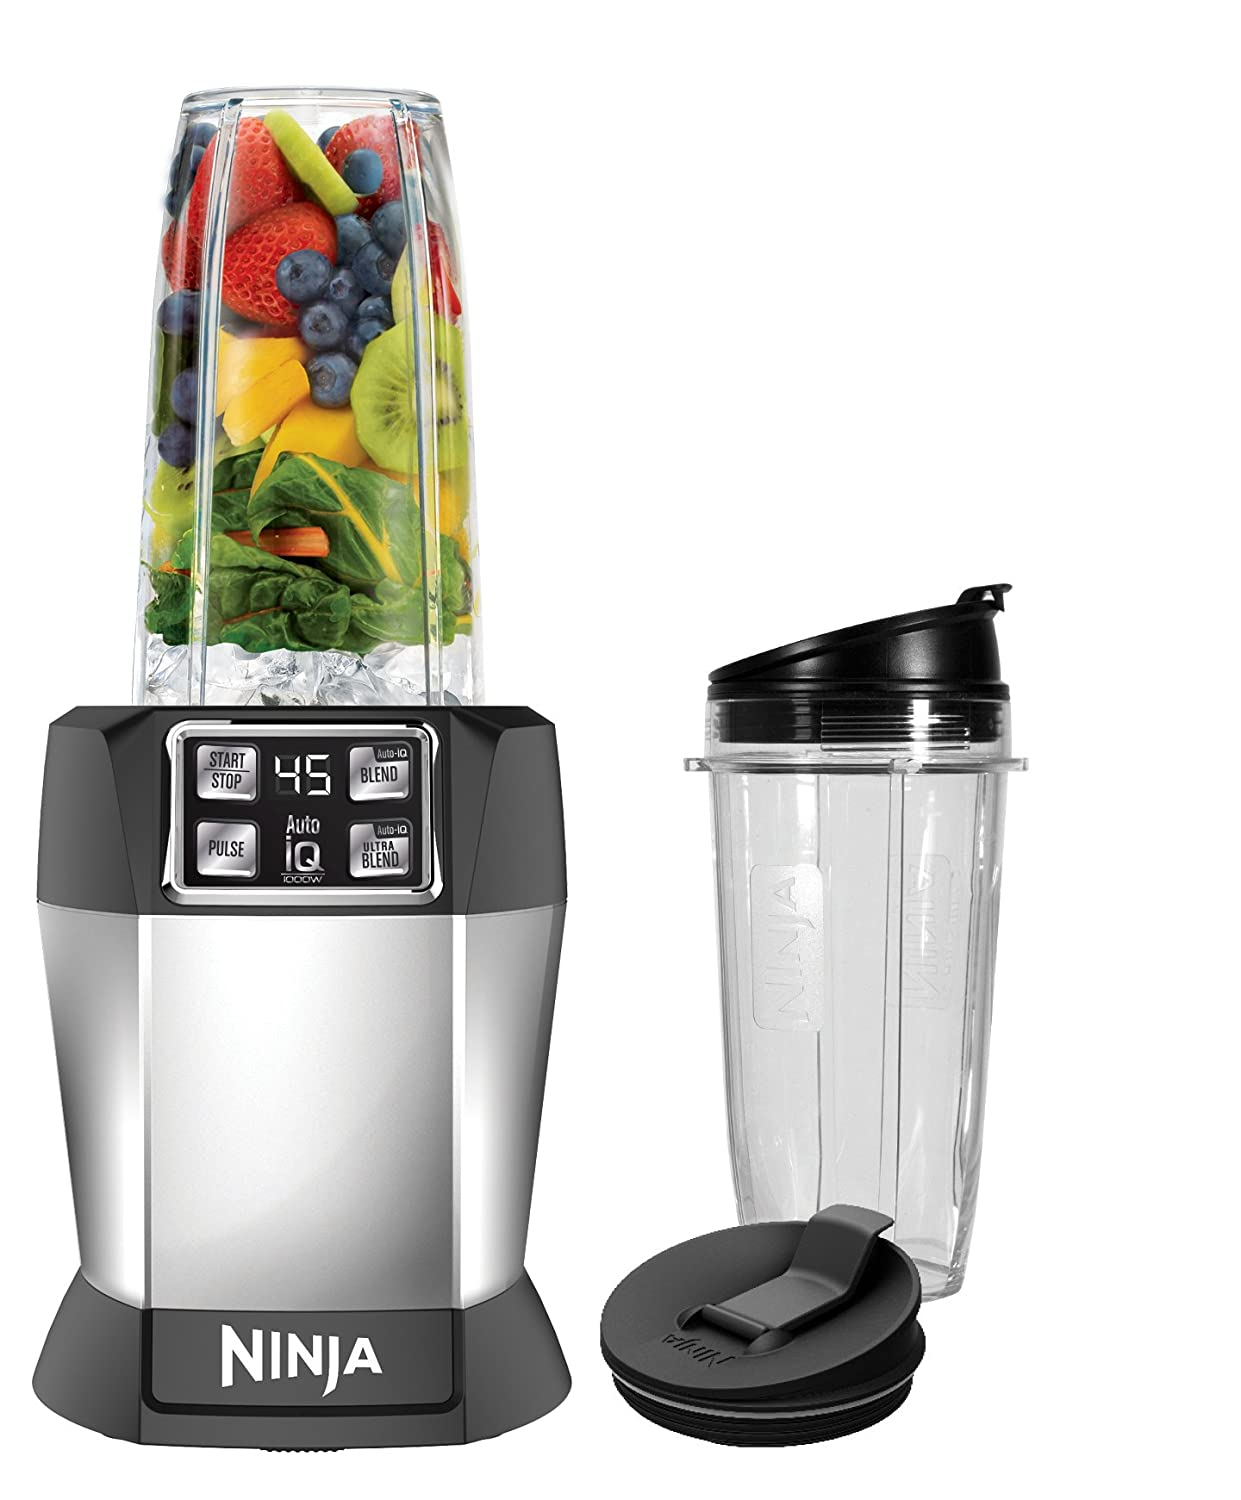 Nutrininja black and sliver color best juicer